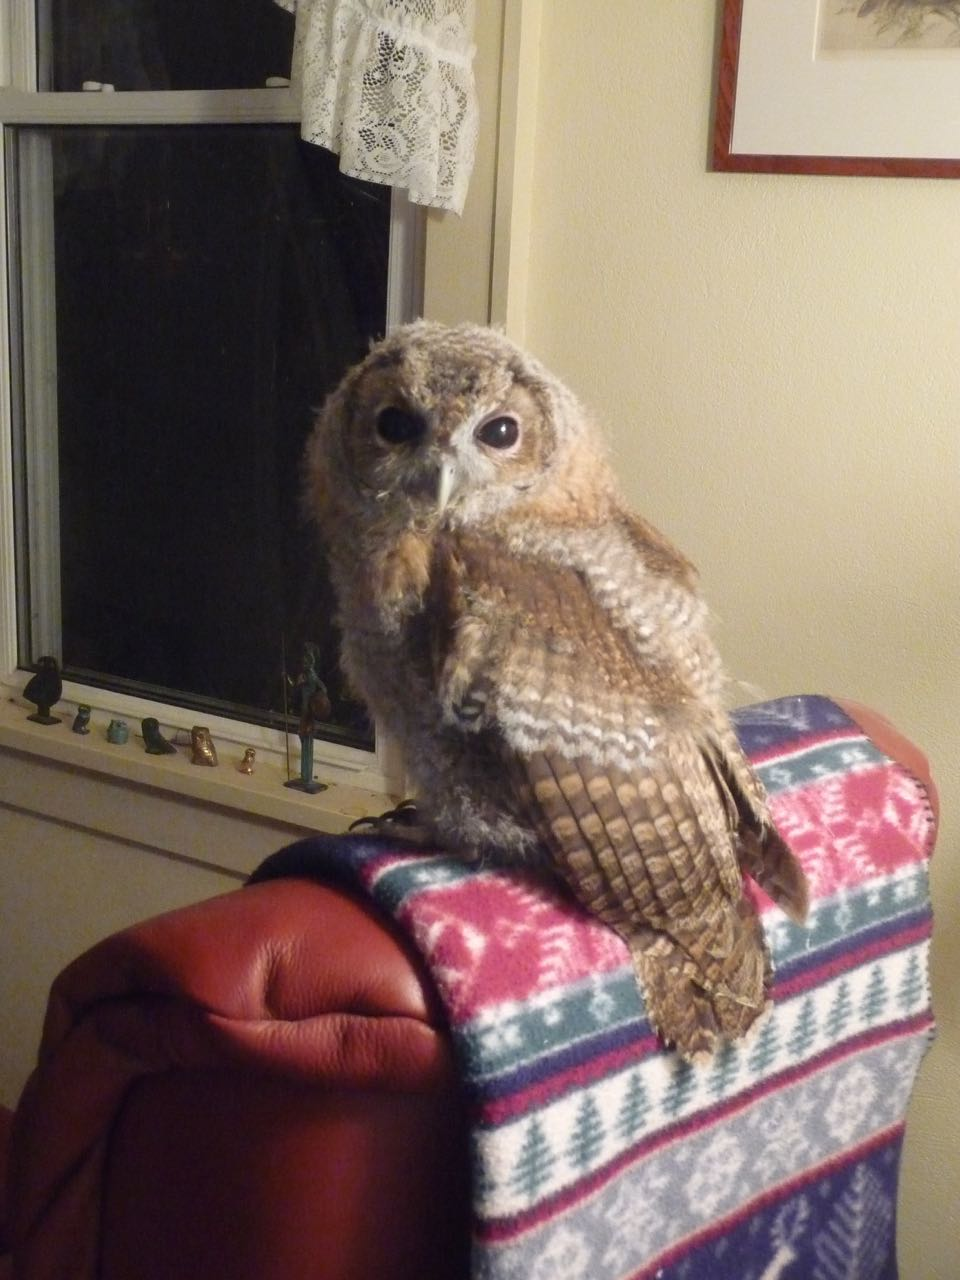 Mitzy the tawny owl sitting on the back of a chair with a blanket under her